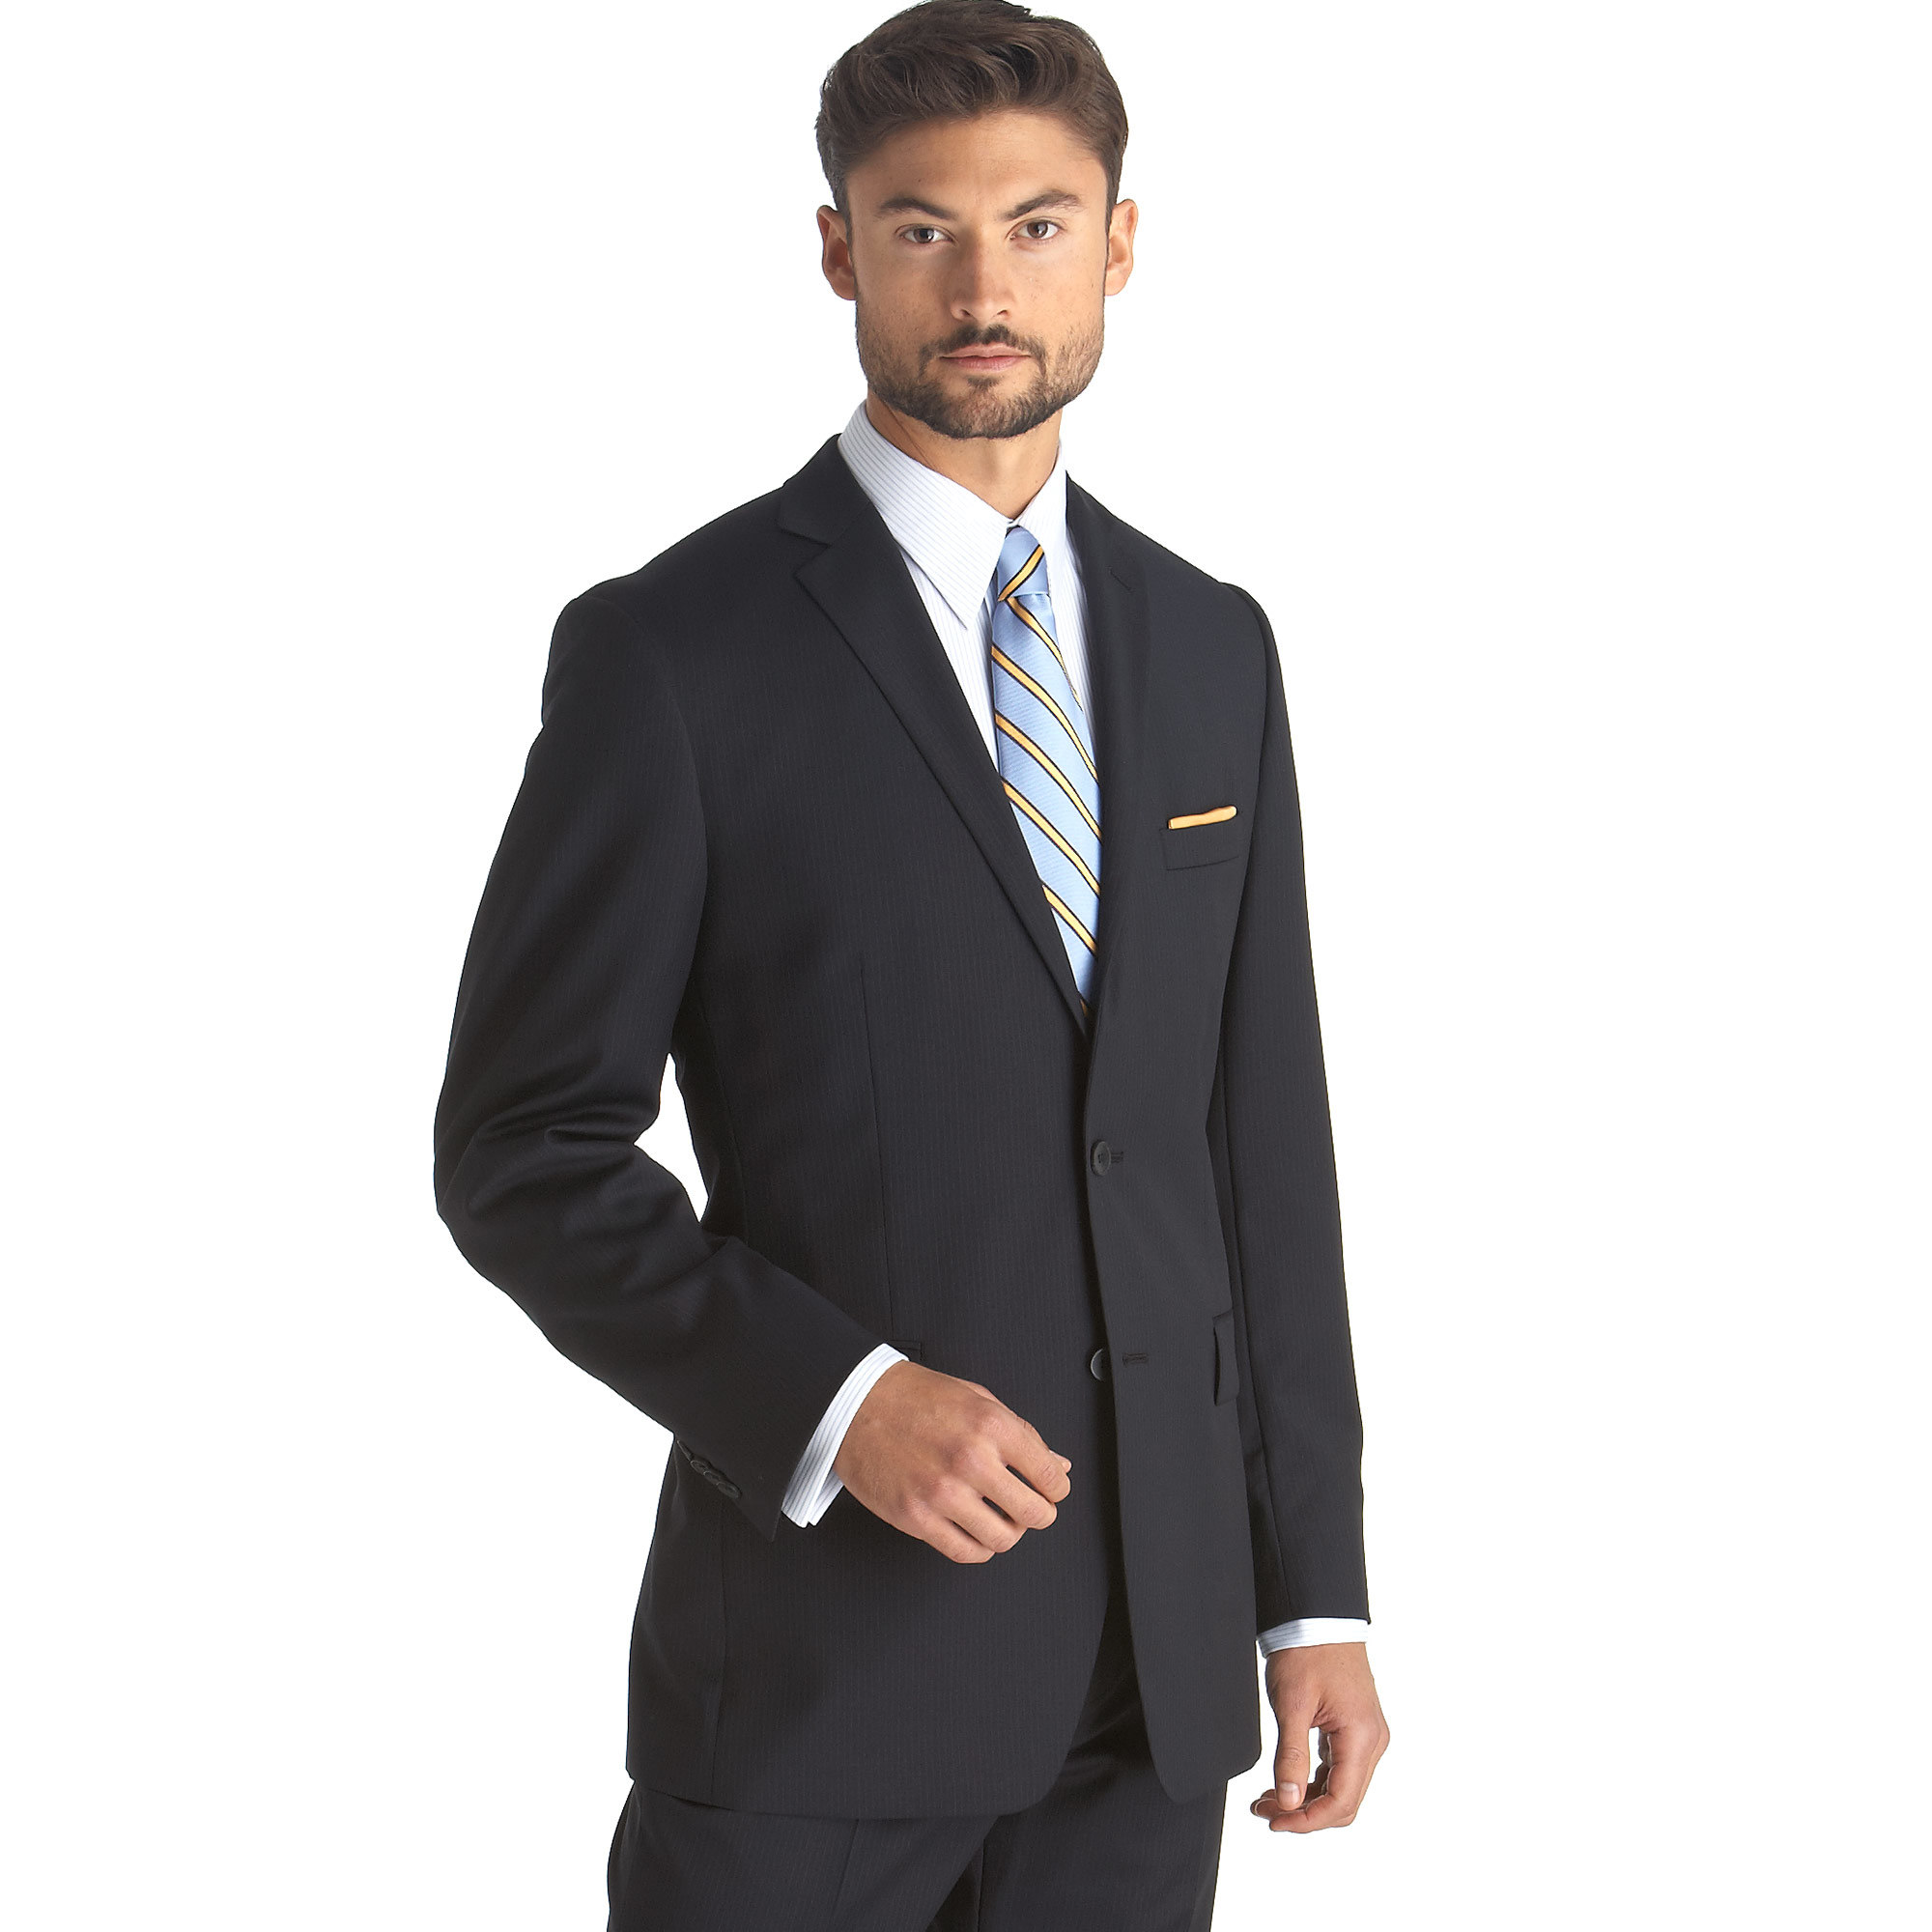 Shop for men's suits clearance at tennesseemyblogw0.cf Browse closeout suit & designer brand suit collections & styles. FREE Shipping on orders $99+.